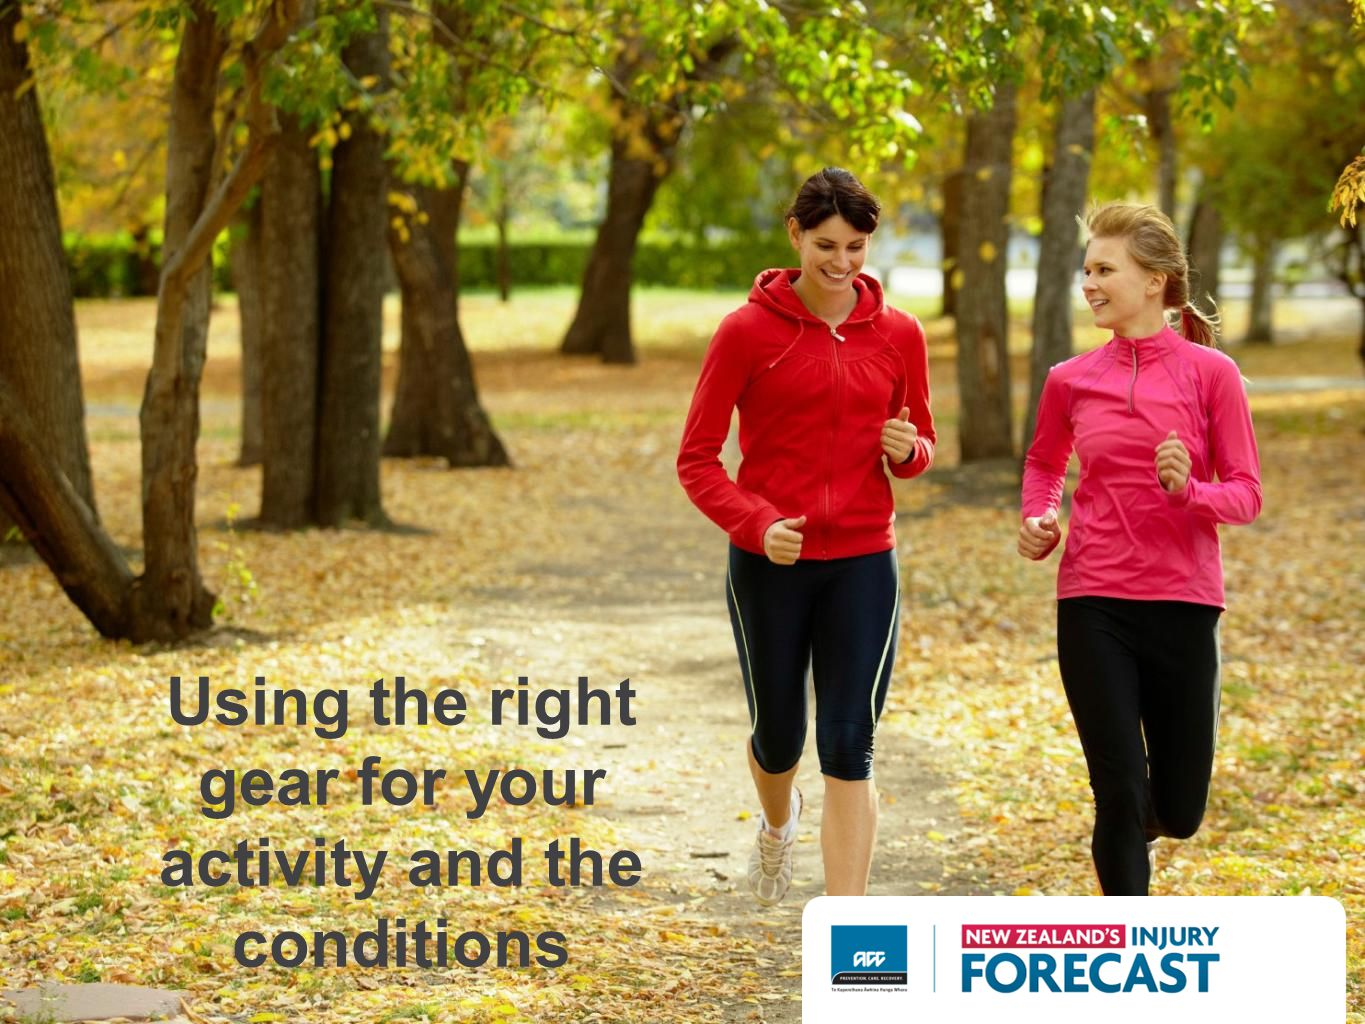 Using the right gear for your activity and the conditions